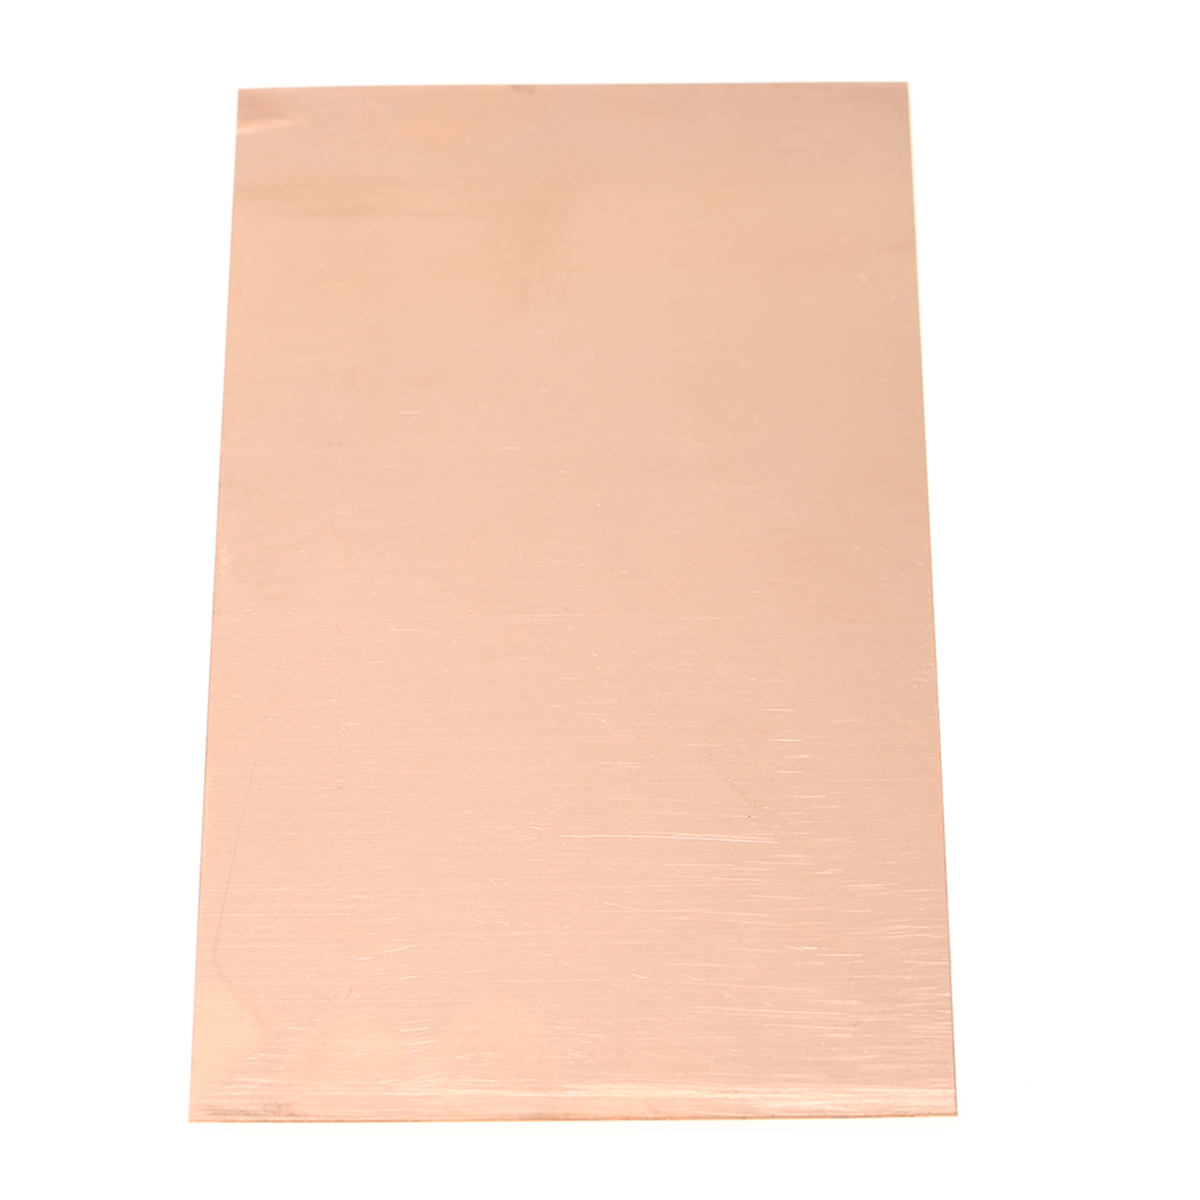 1pc High Purity Copper Cu Metal Sheet Plate Foil Panel 100x200x0.5mm Mayitr For Power Tool tungsten sheet plate for scientific research and experiment high purity